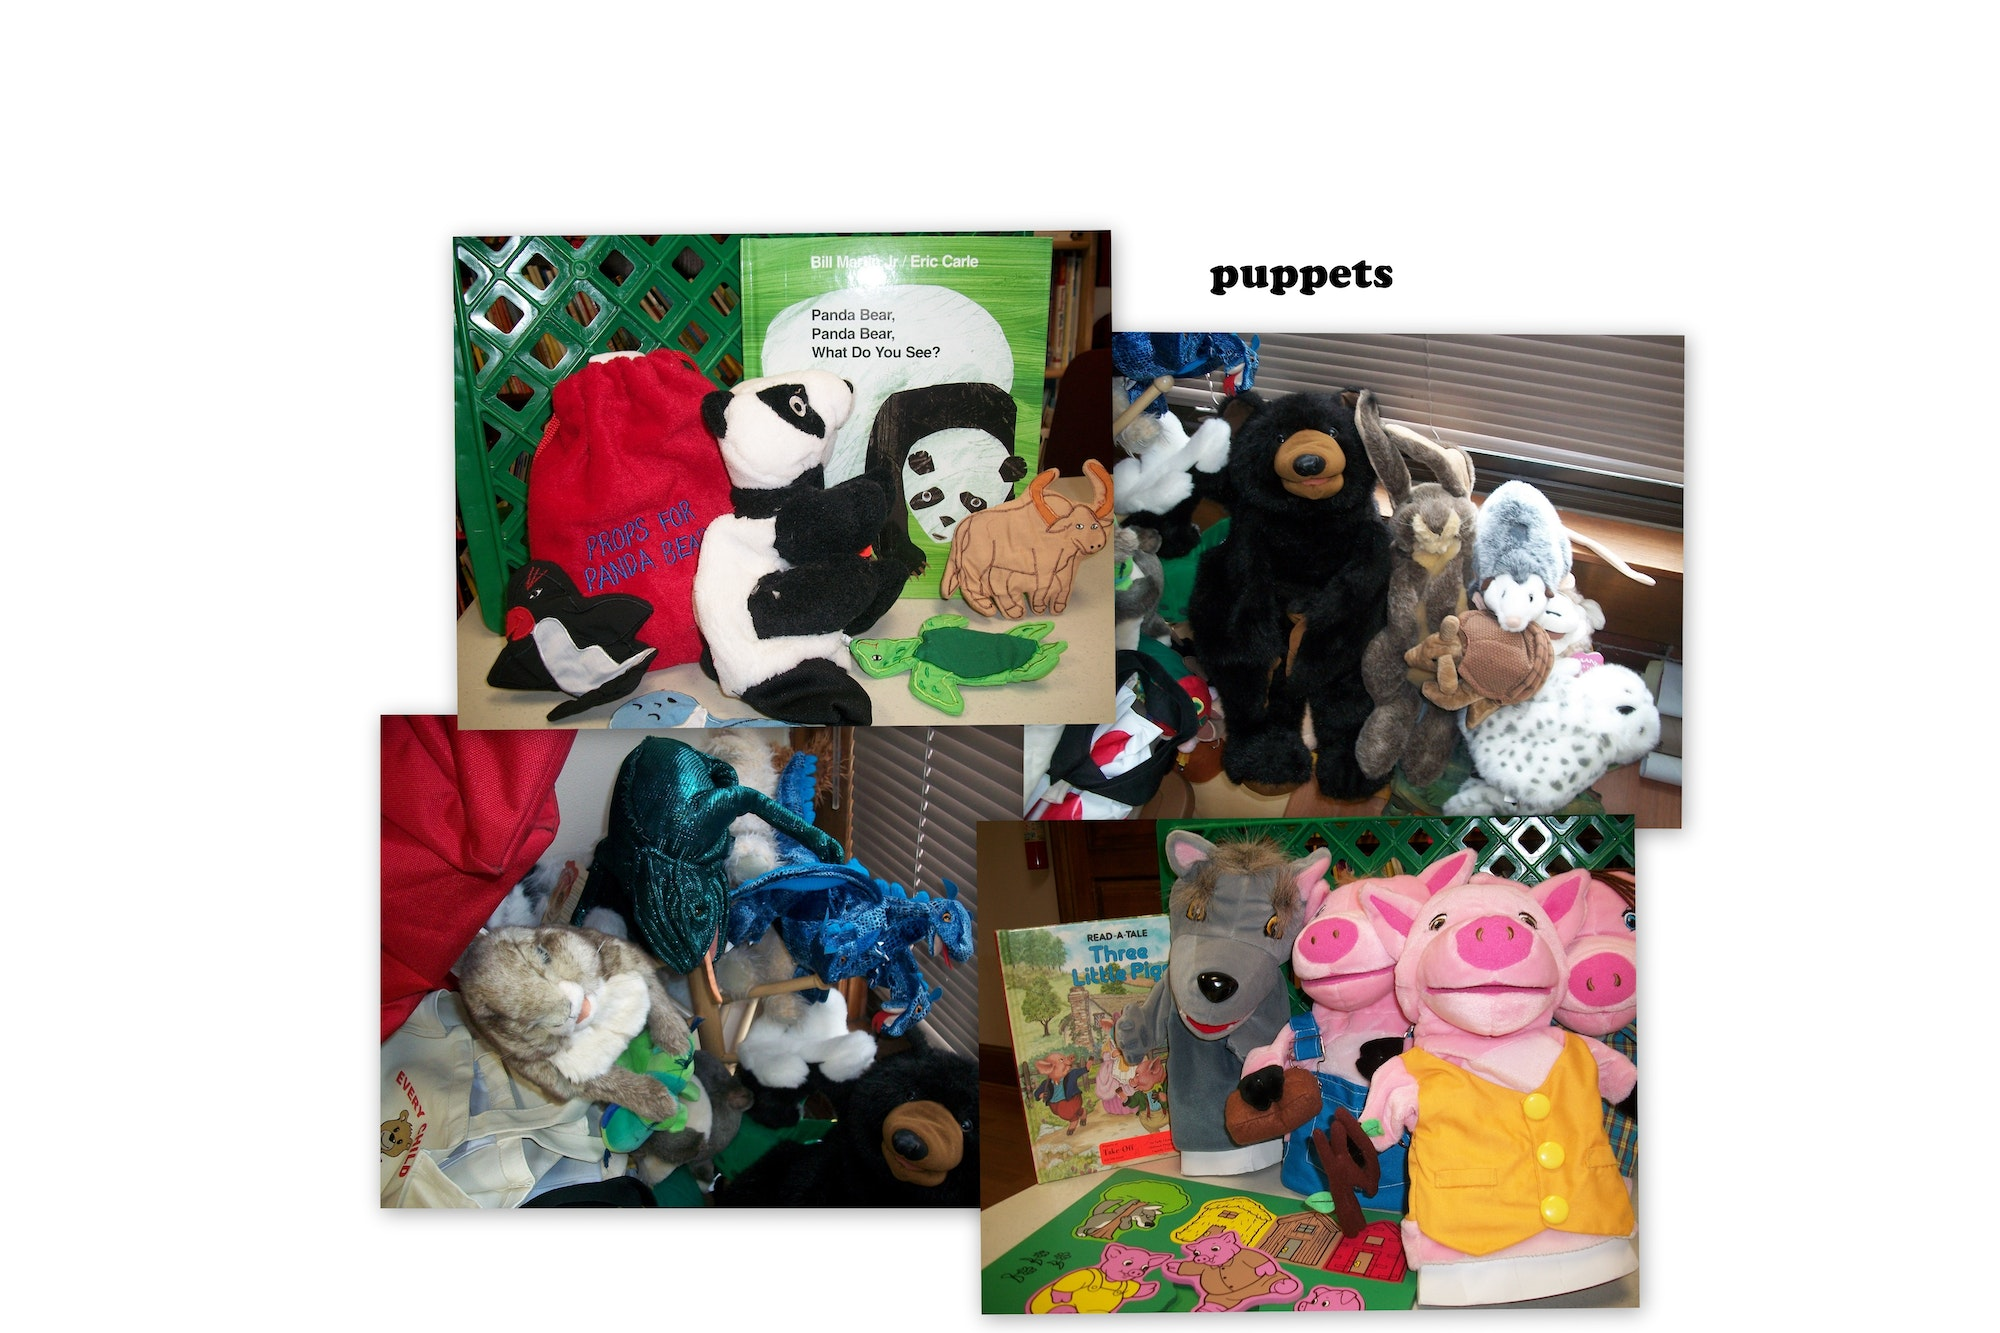 photo of some of the available puppets from Take Off! program